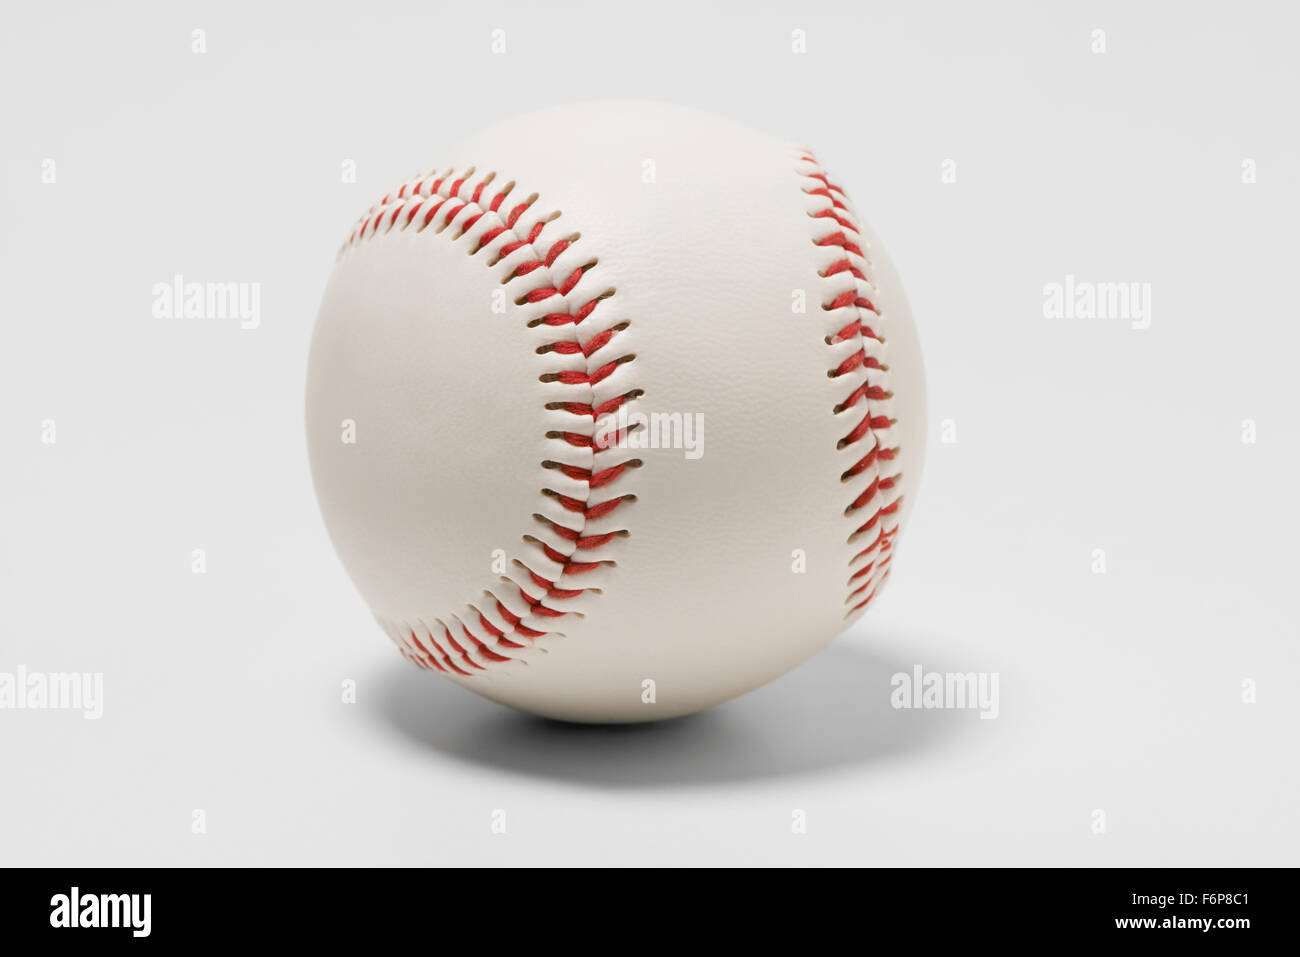 American Baseball with Red Stitching - Stock Image